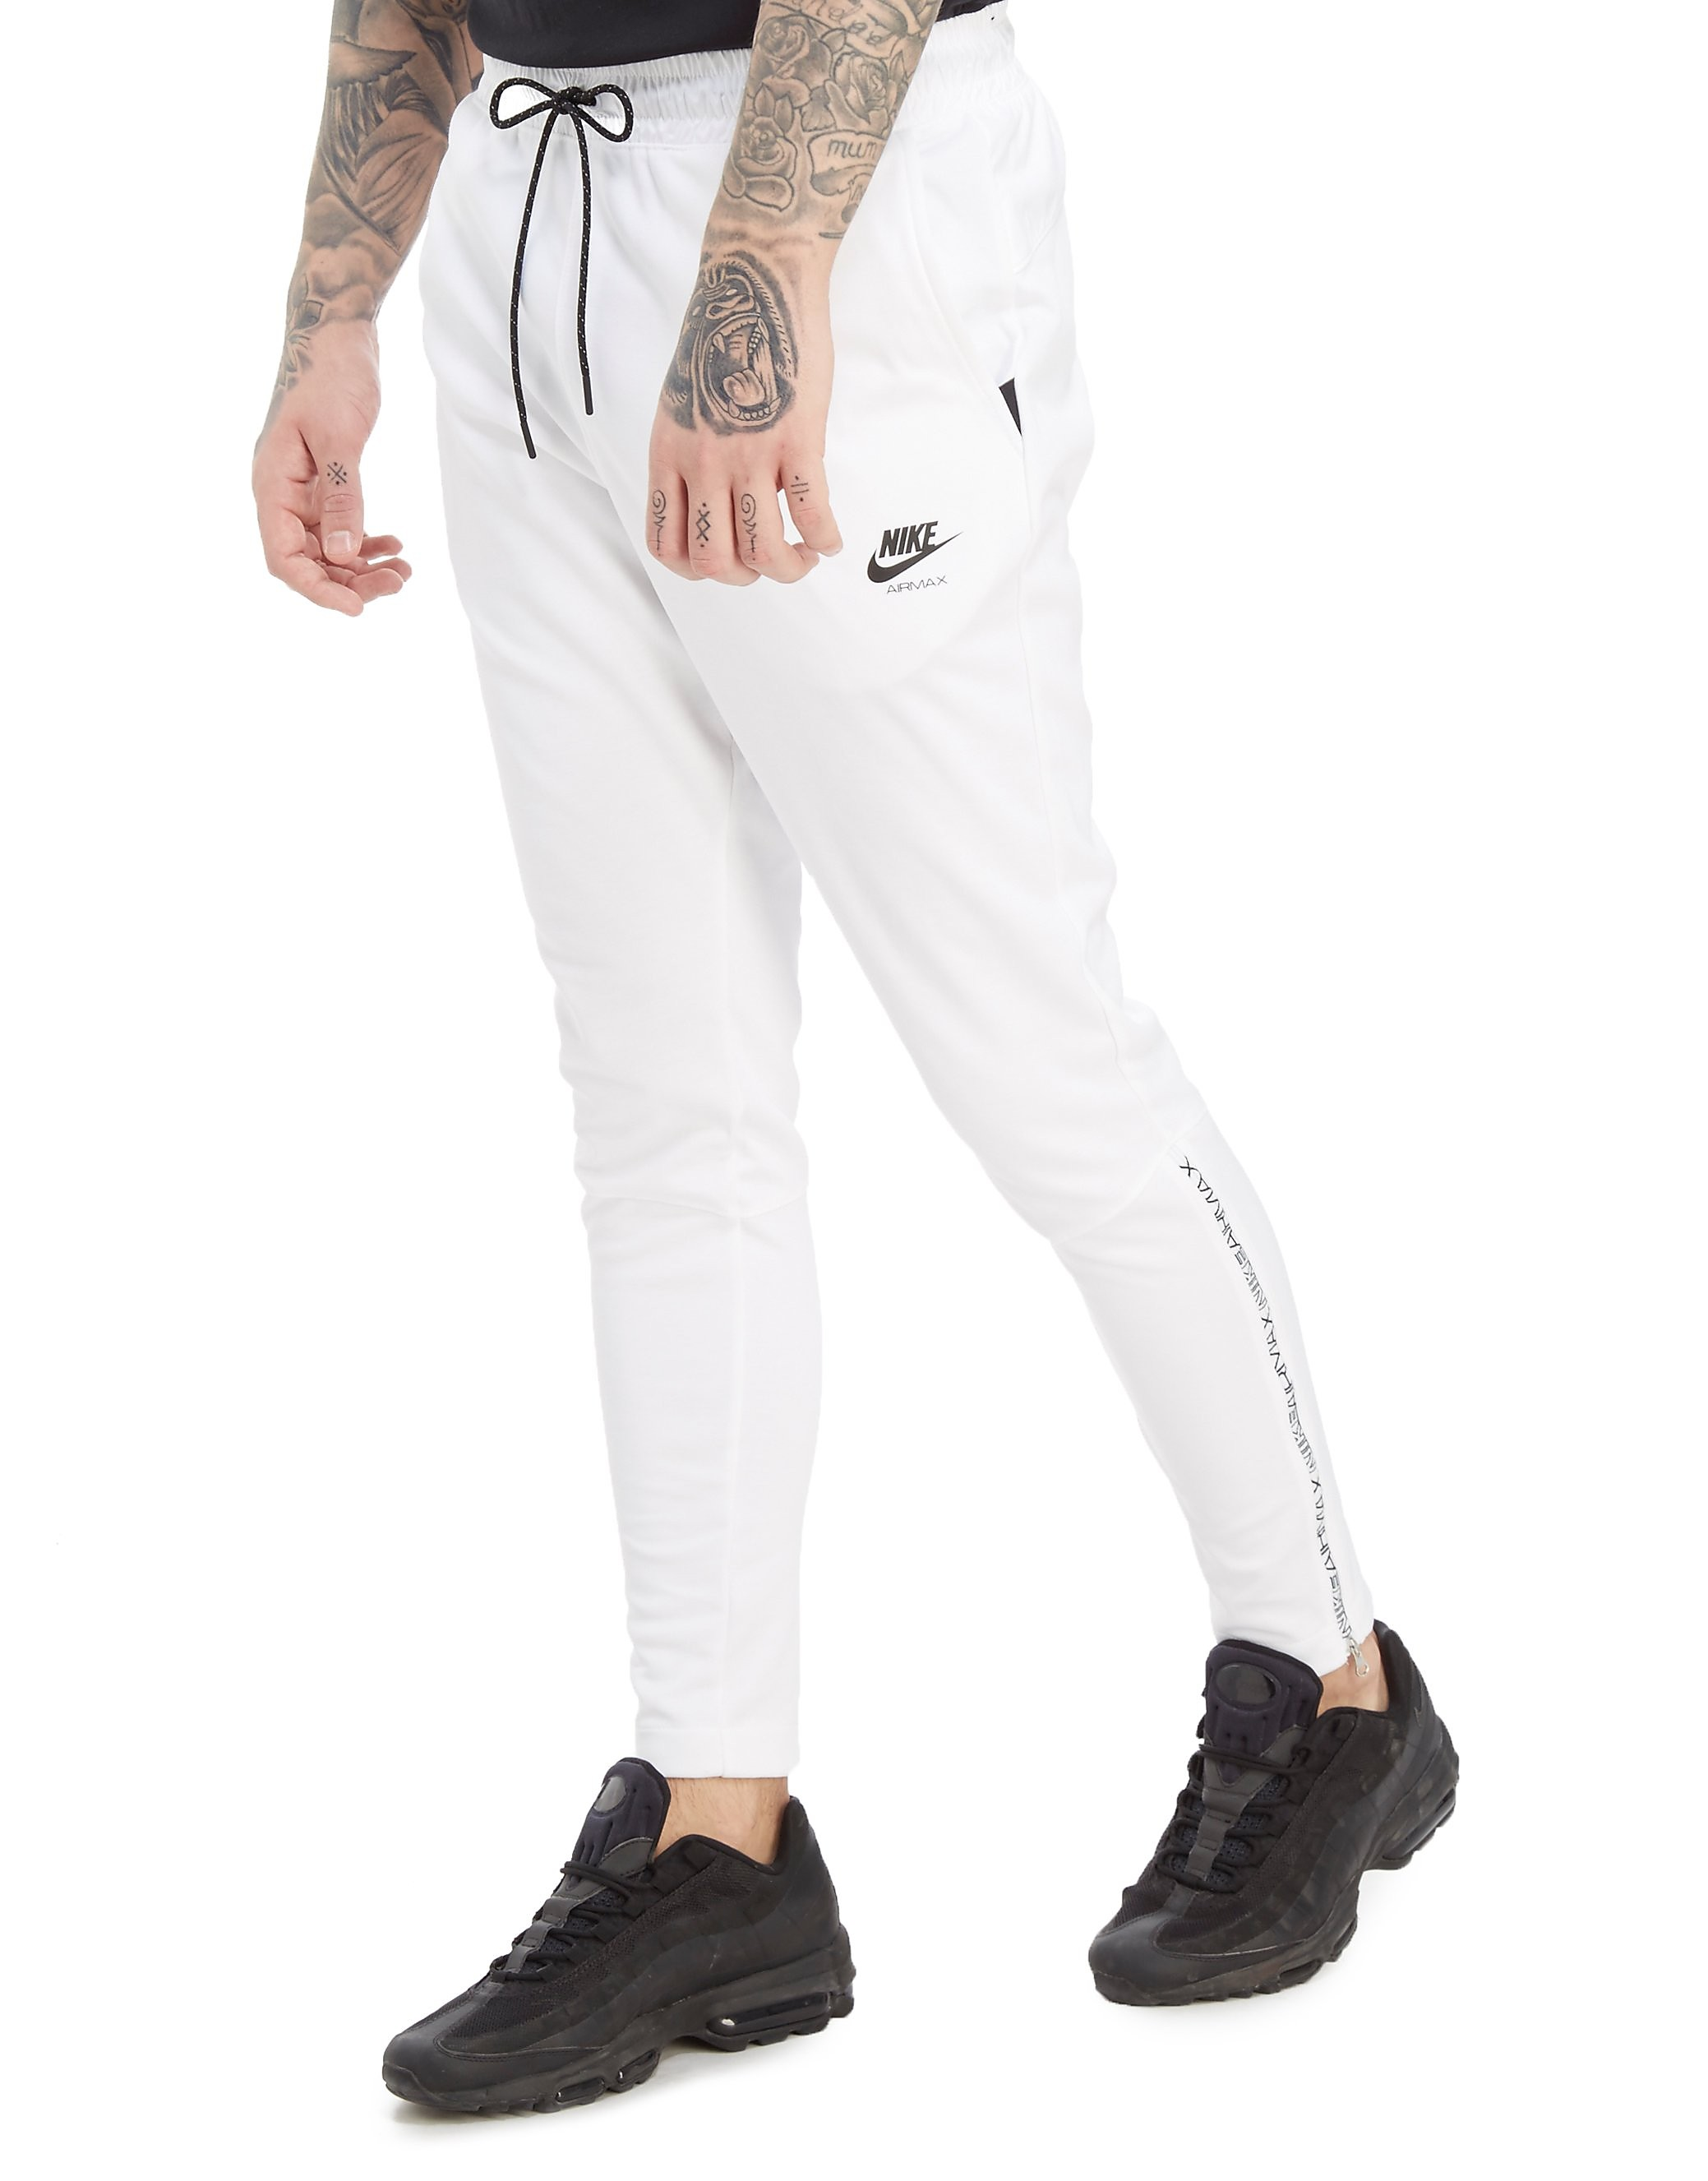 Nike Air Max Poly Joggers - Only at JD - White/Black - Mens, White/Black